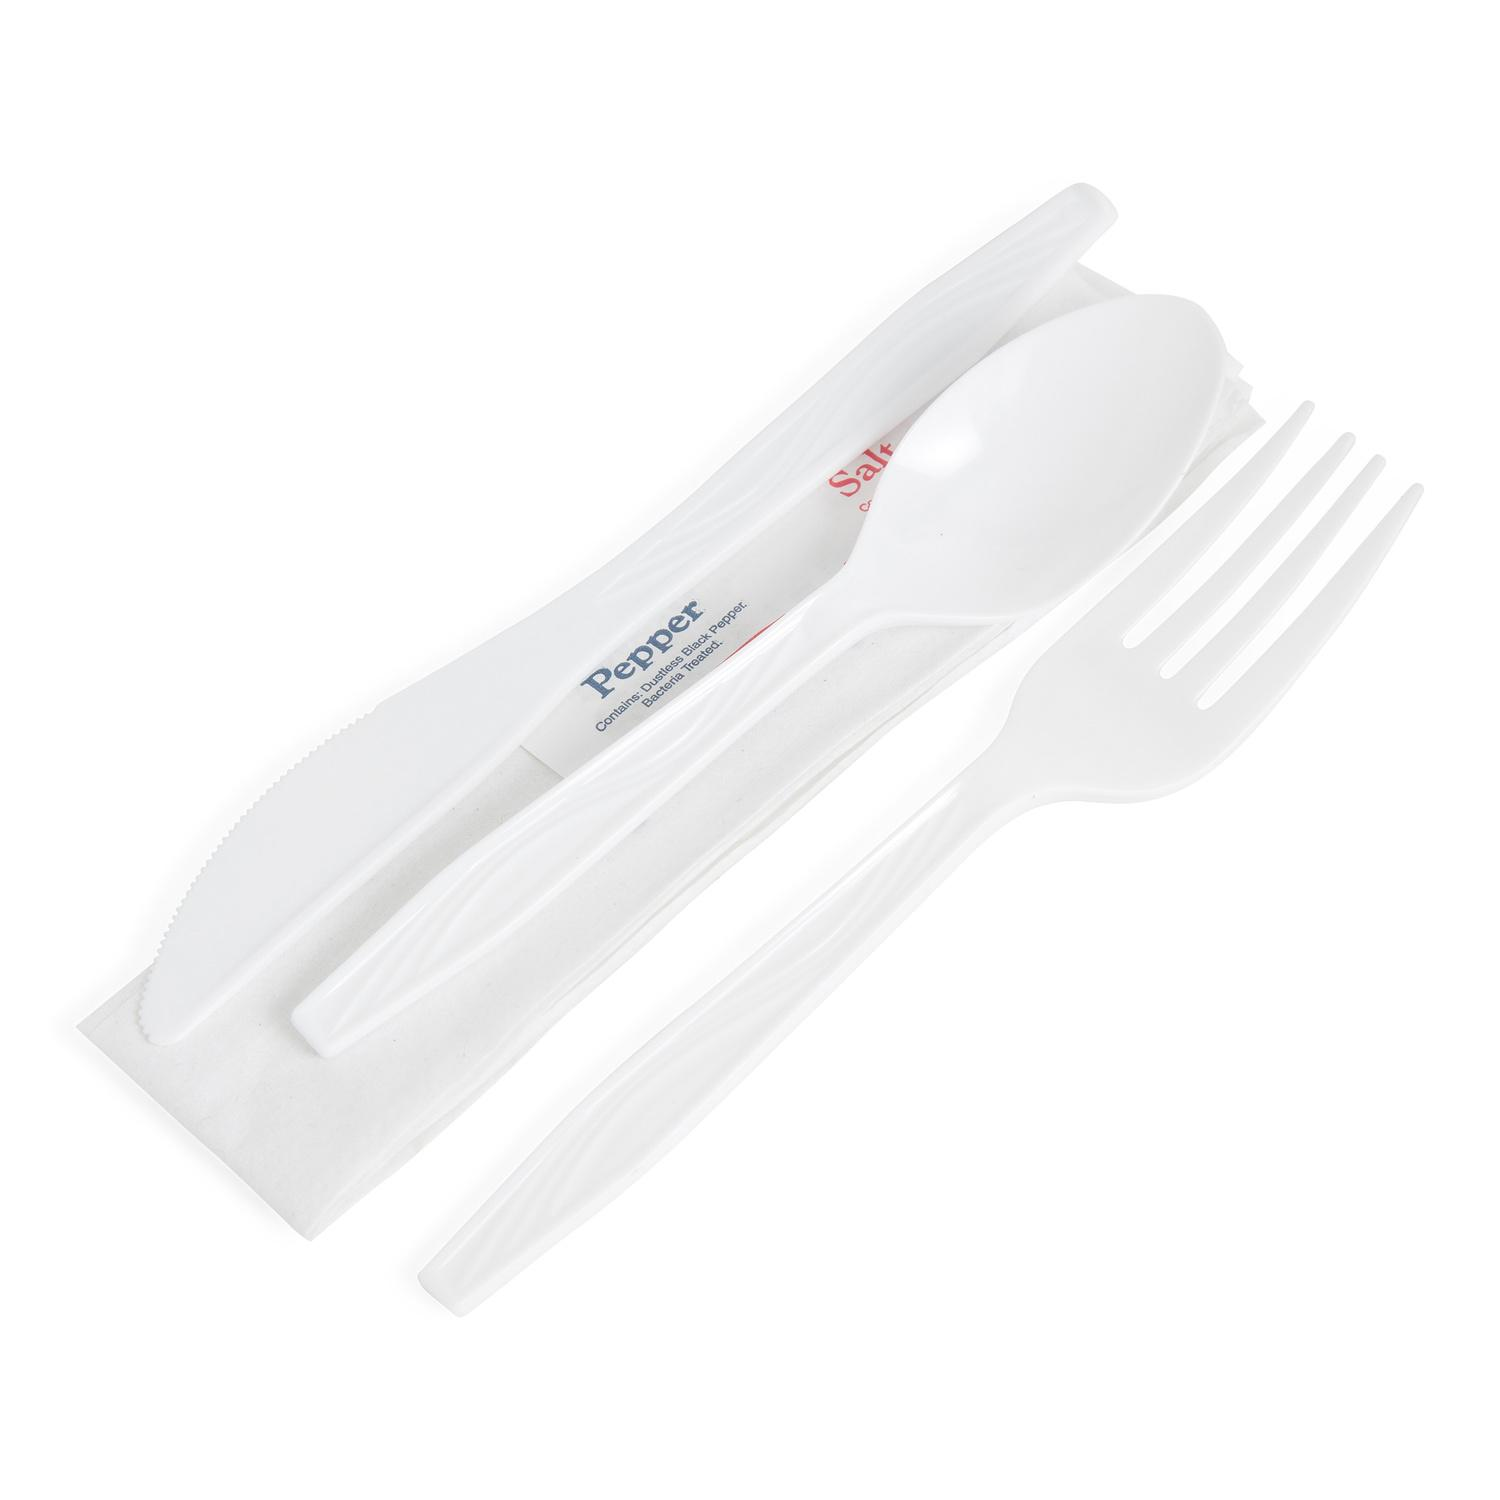 Image of Cutlery Kit